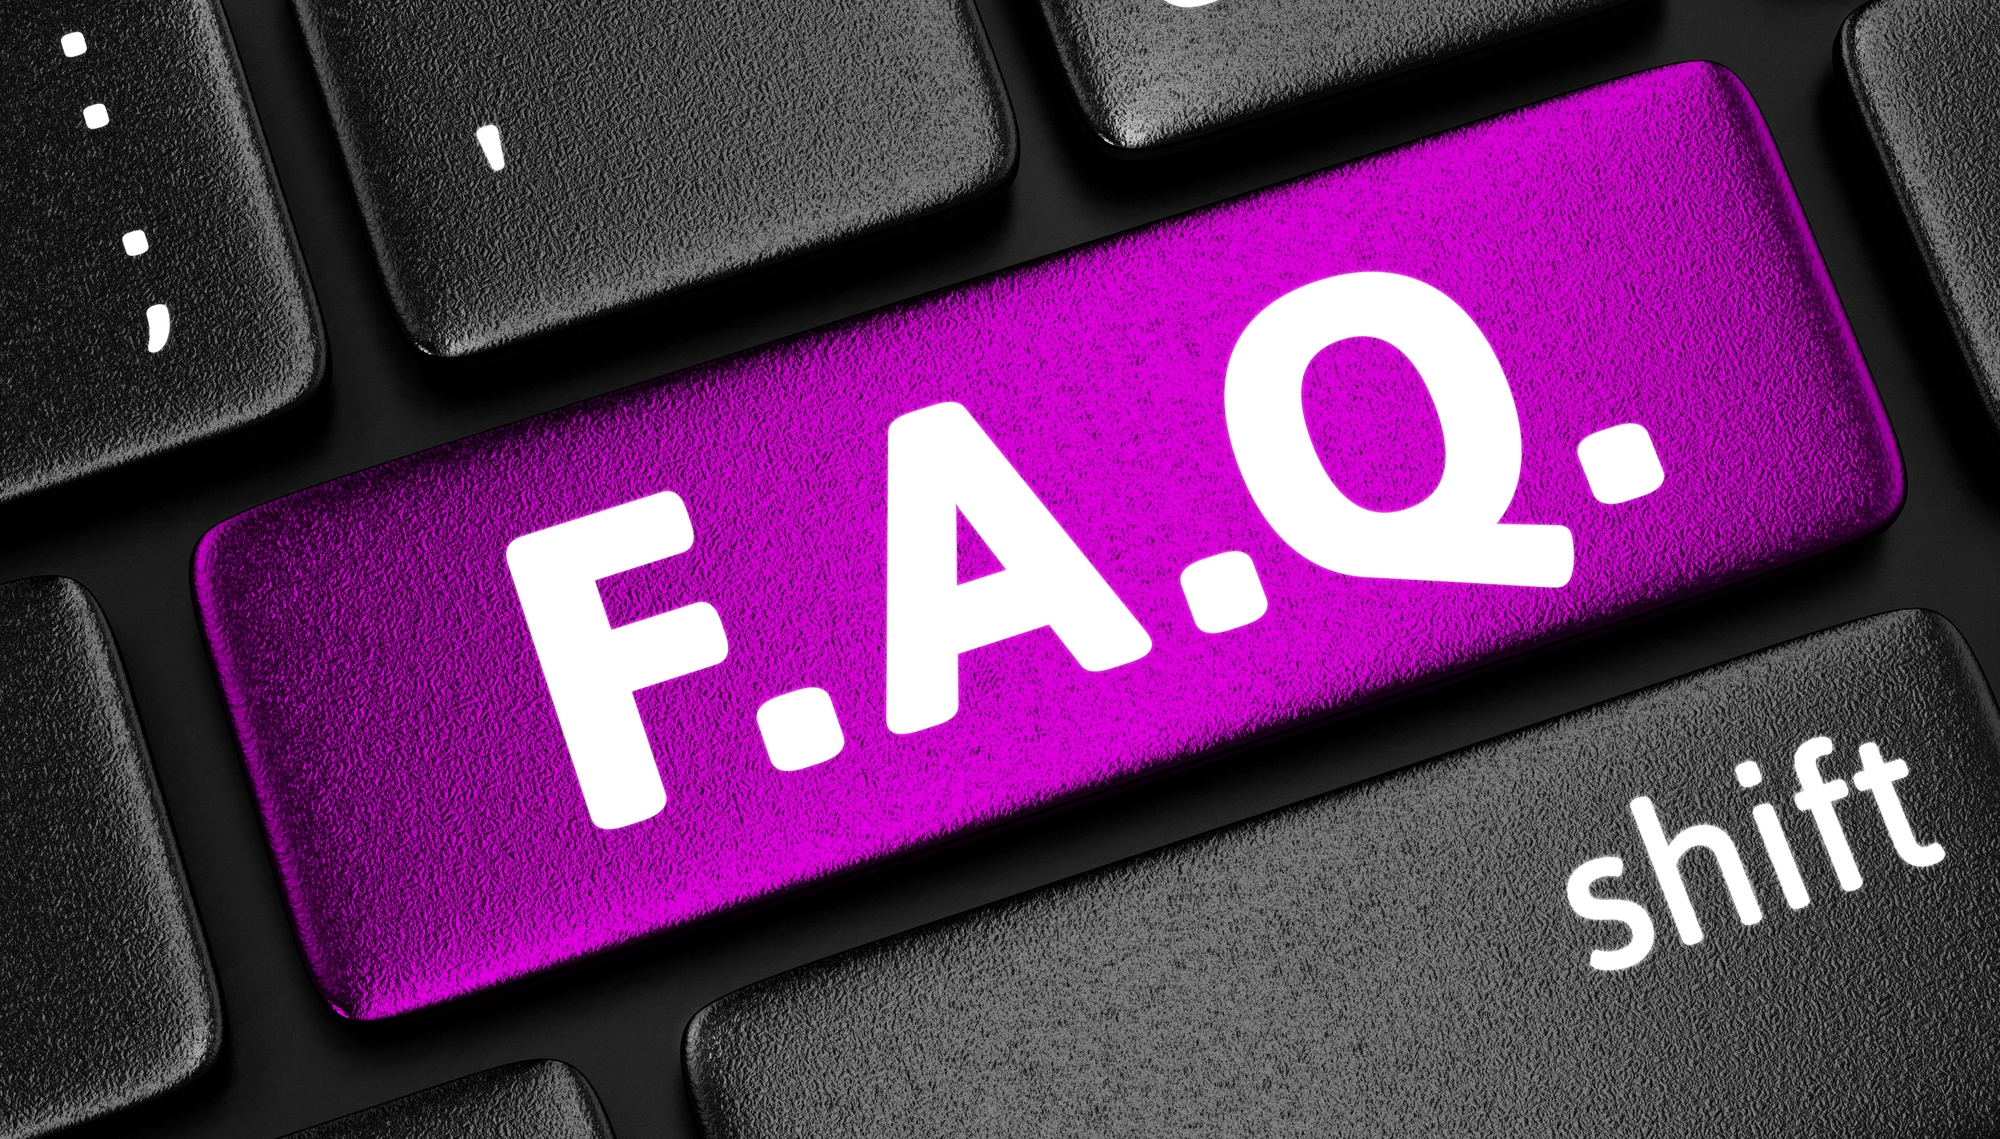 Image: A purple F. A. Q. key on a black keyboard.